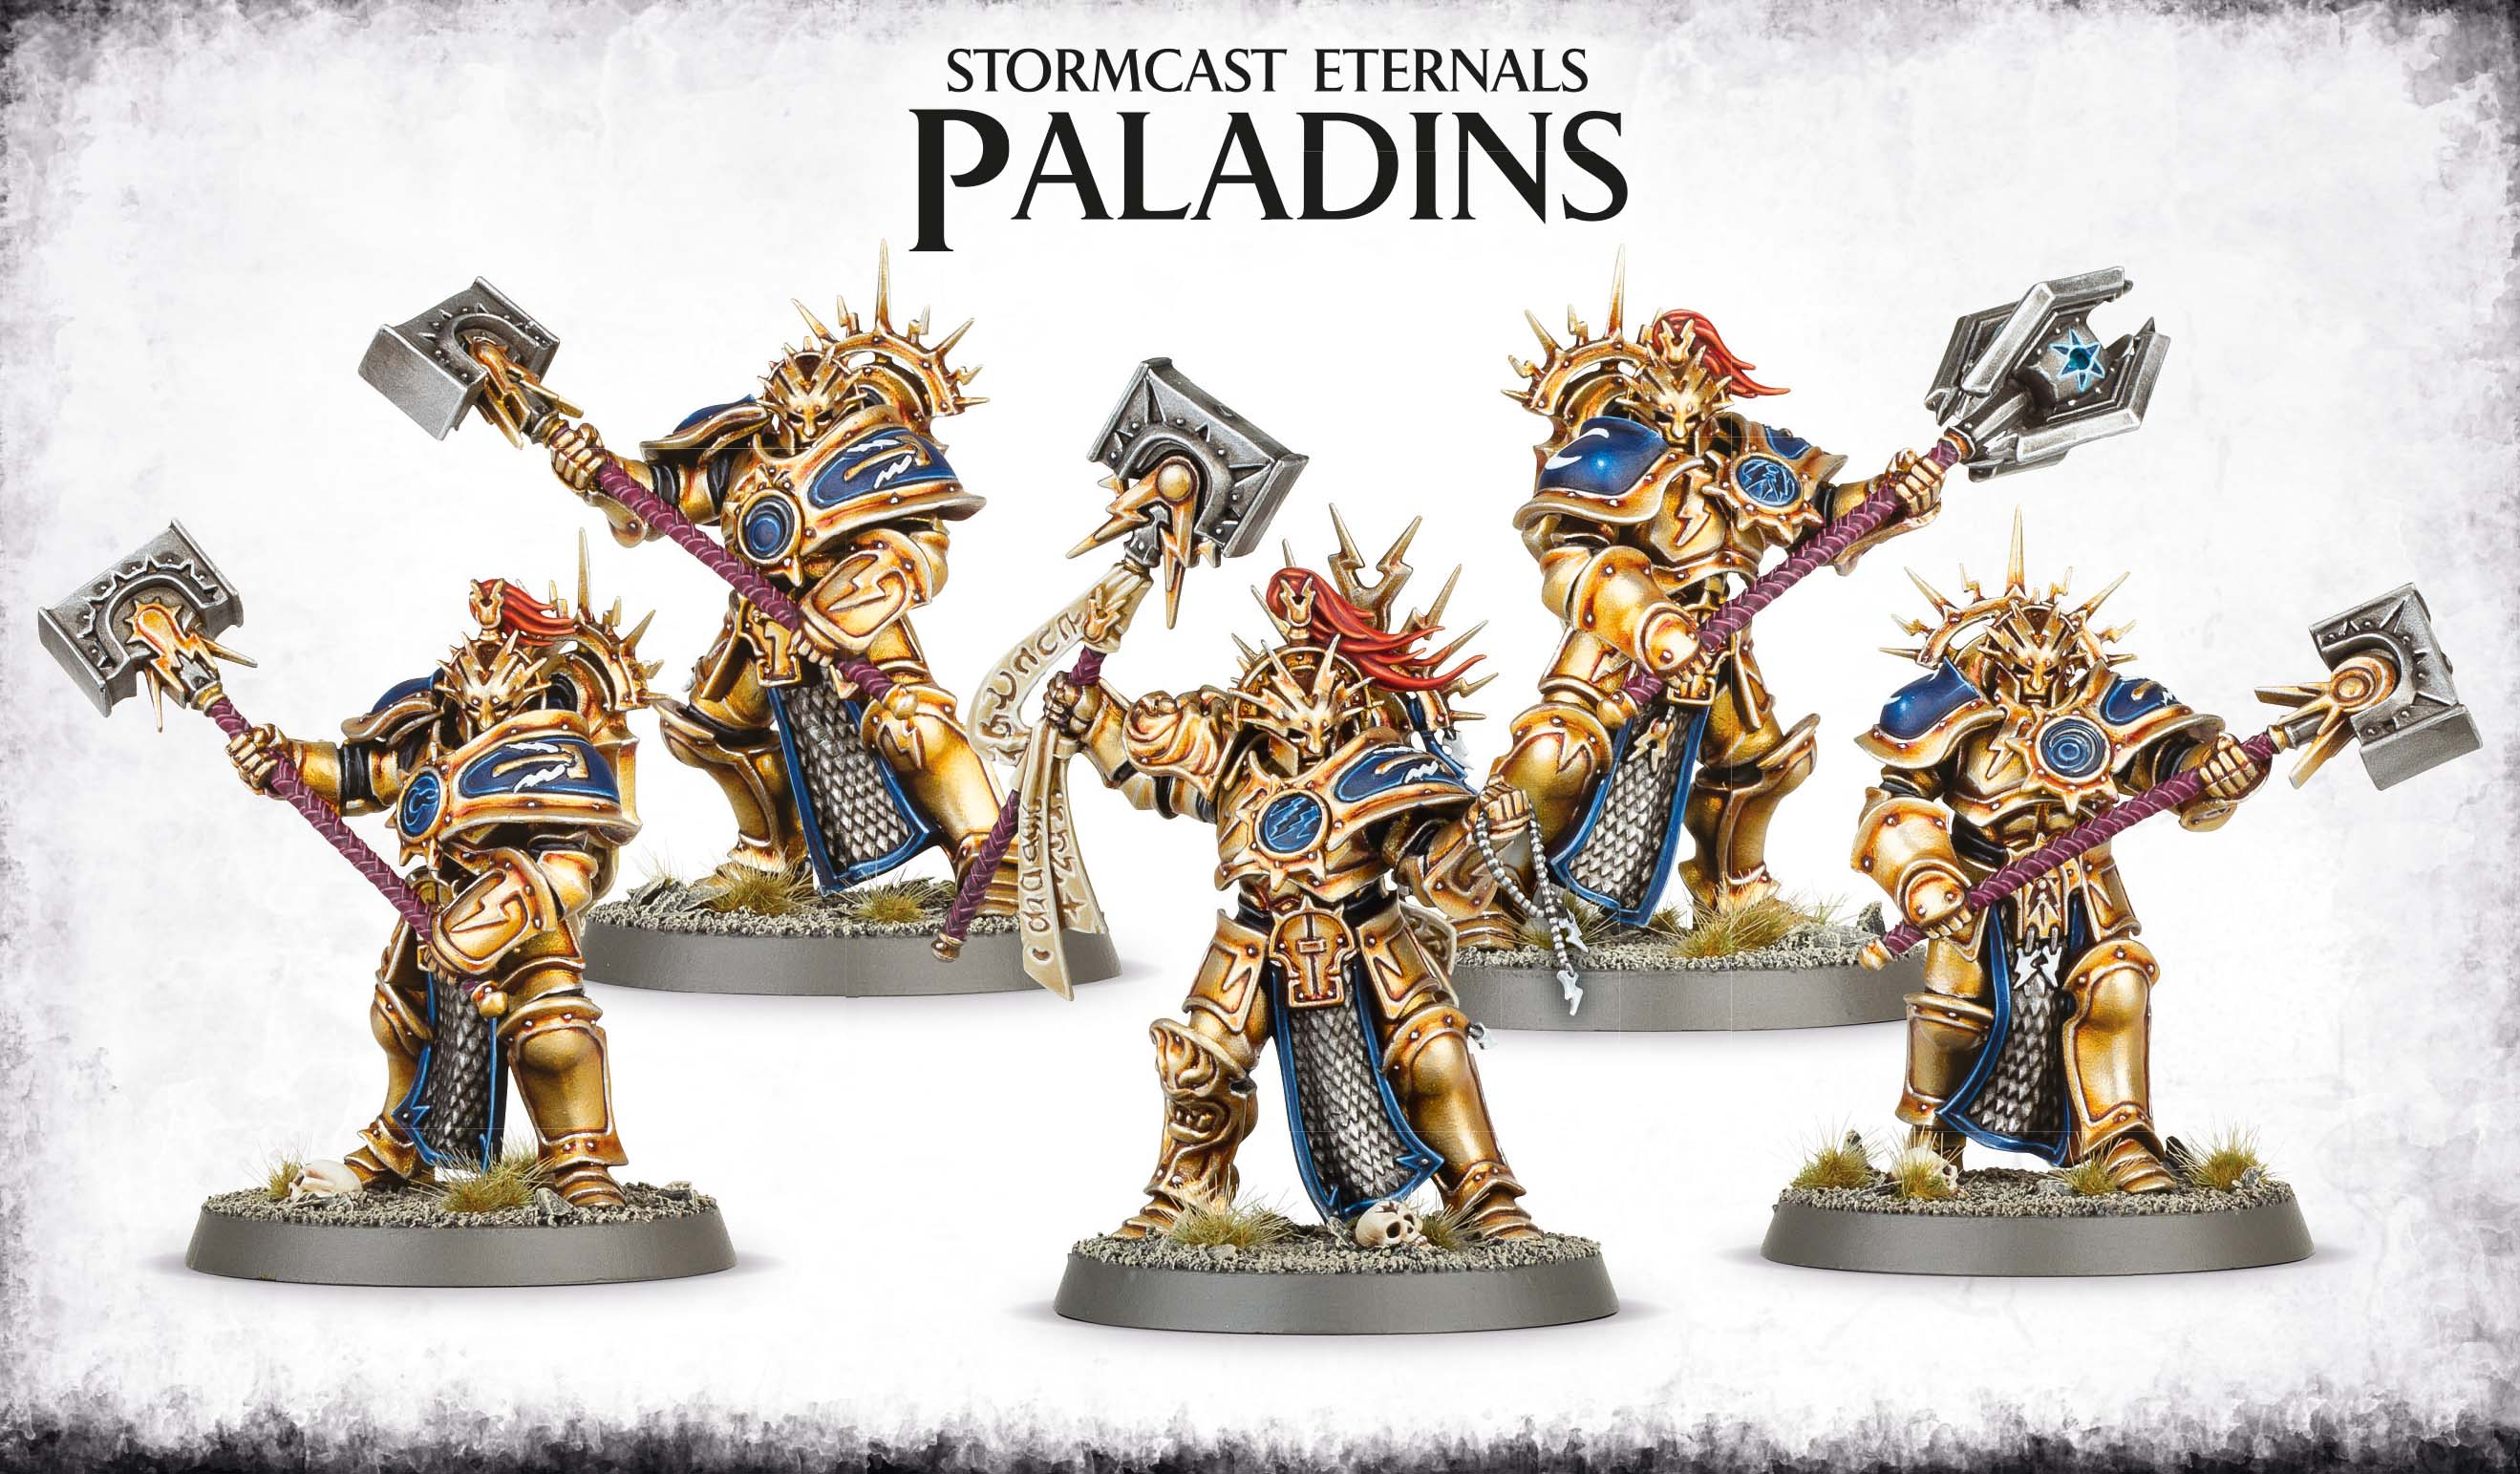 Stormcast Eternals Paladins | Mythicos